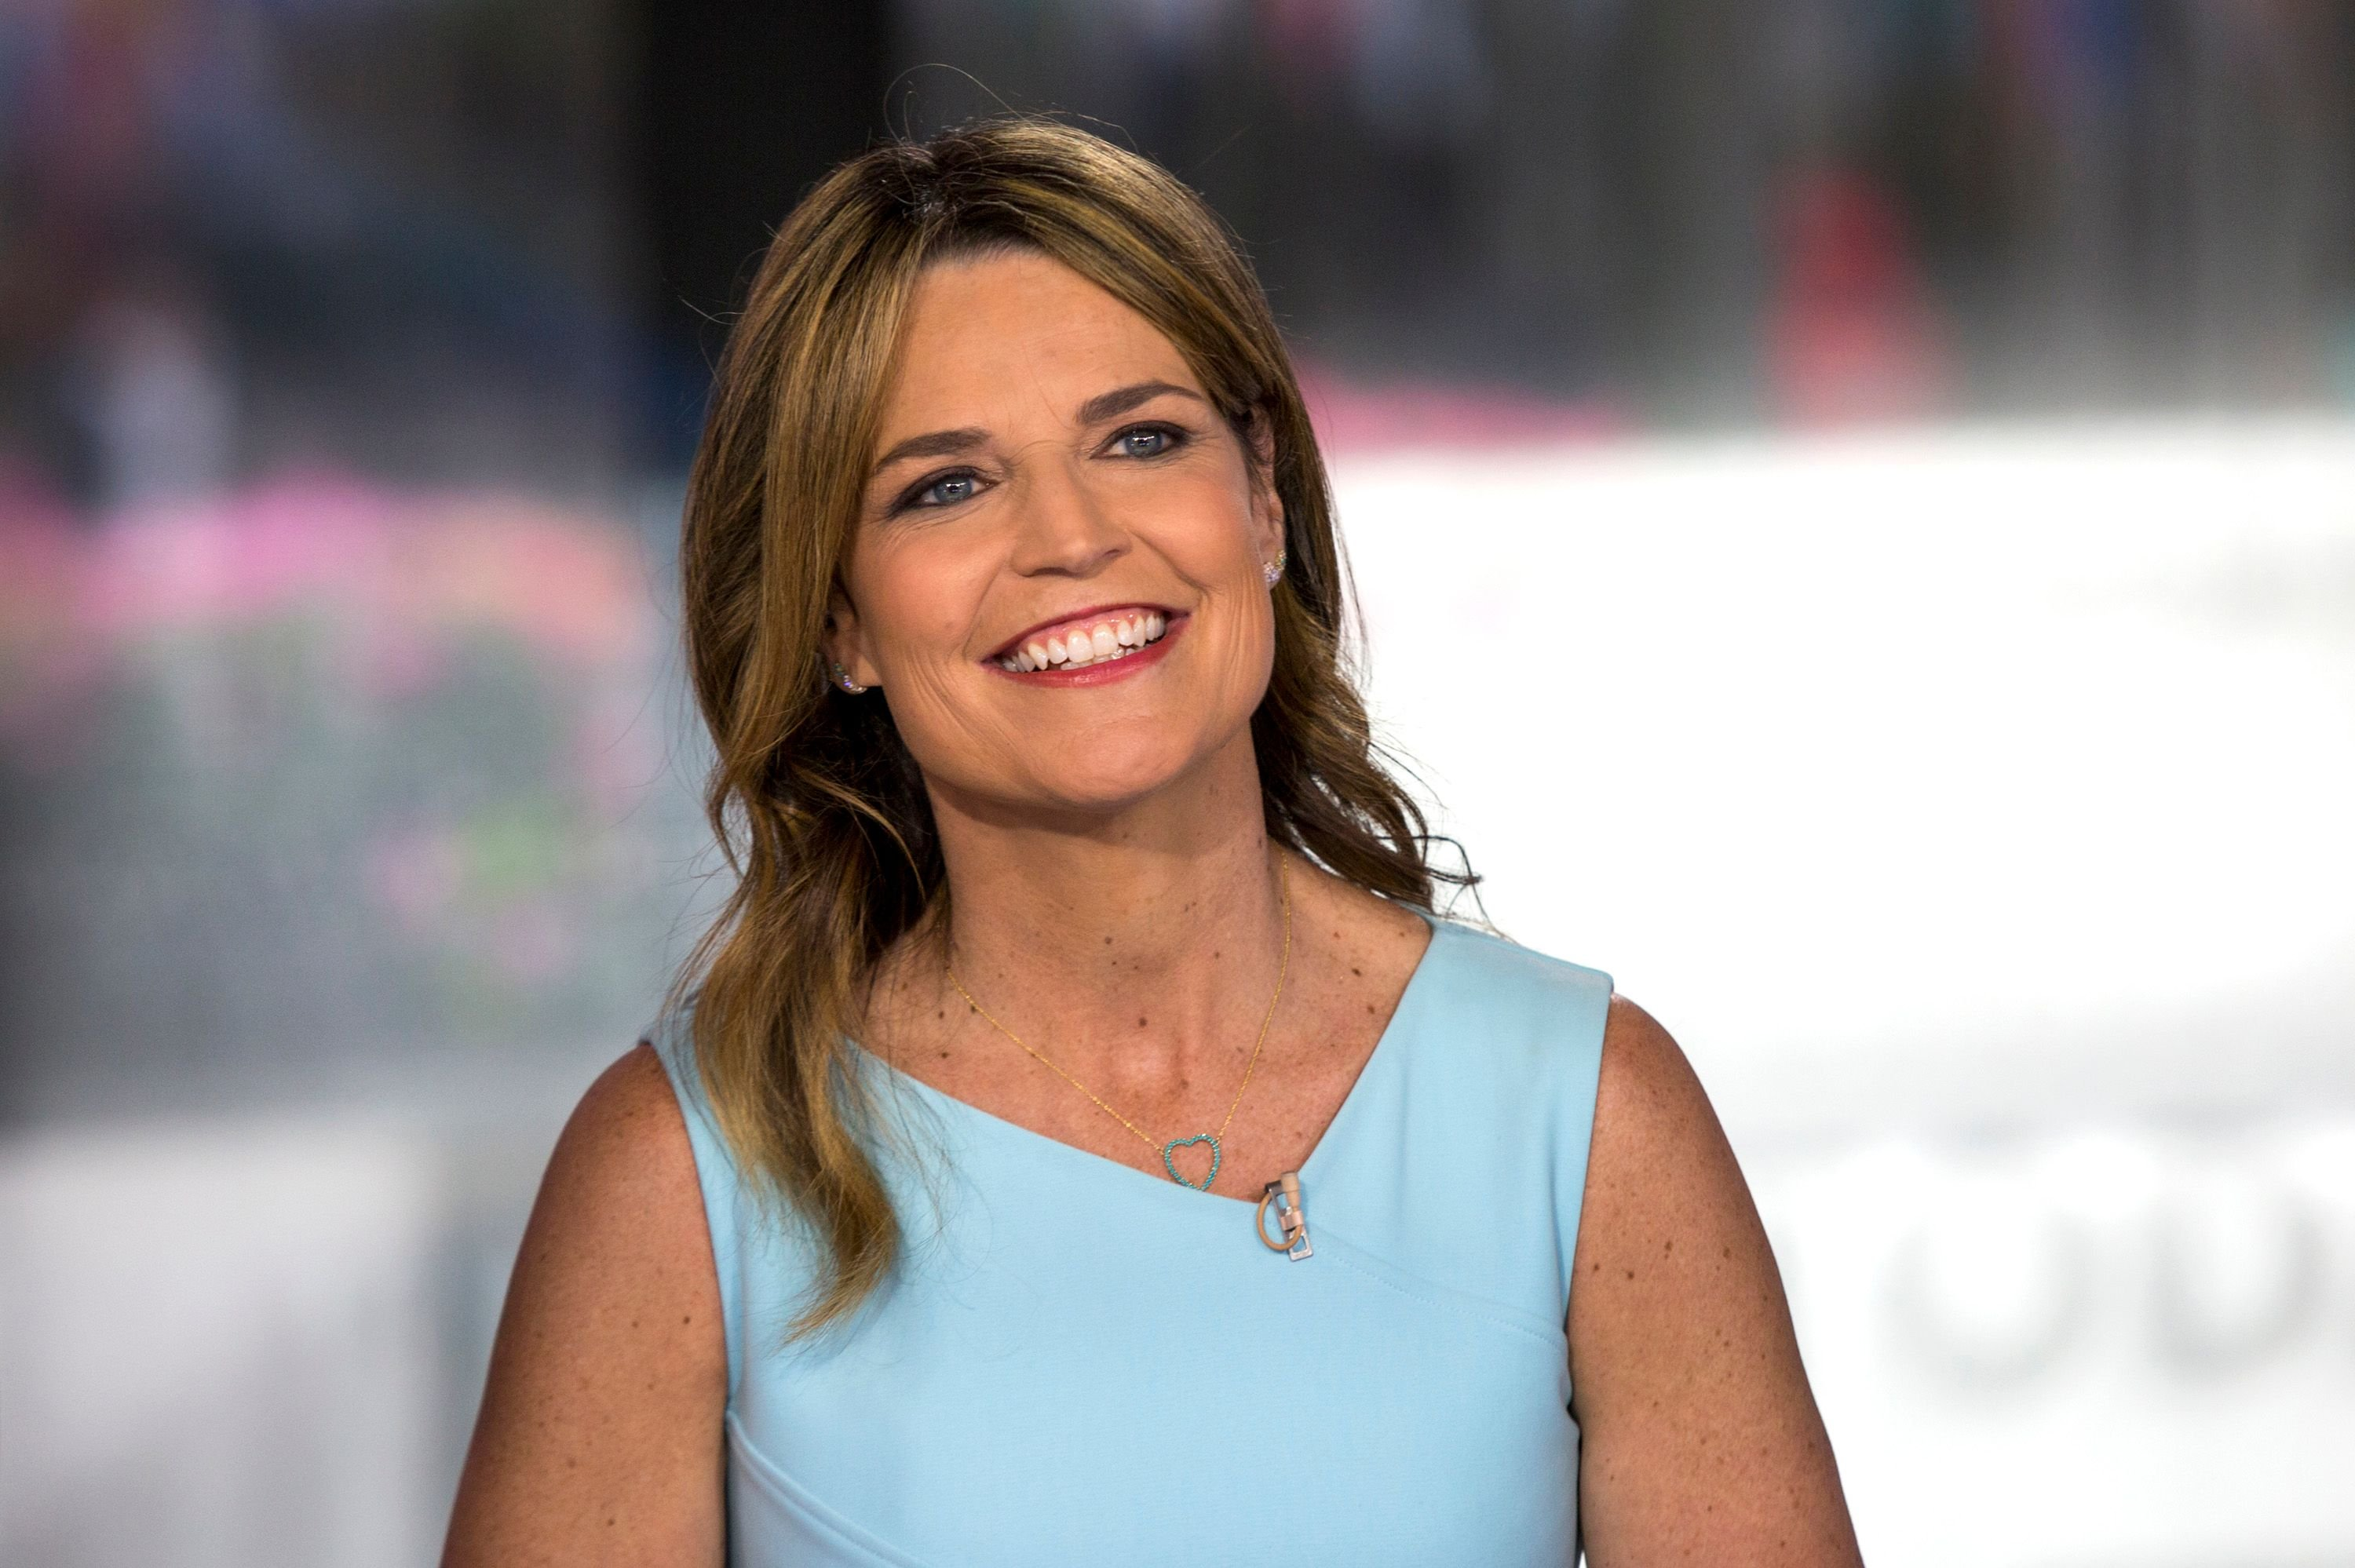 """Savannah Guthrie on the 67th Season of """"Today"""" show on Wednesday June 13, 2018 